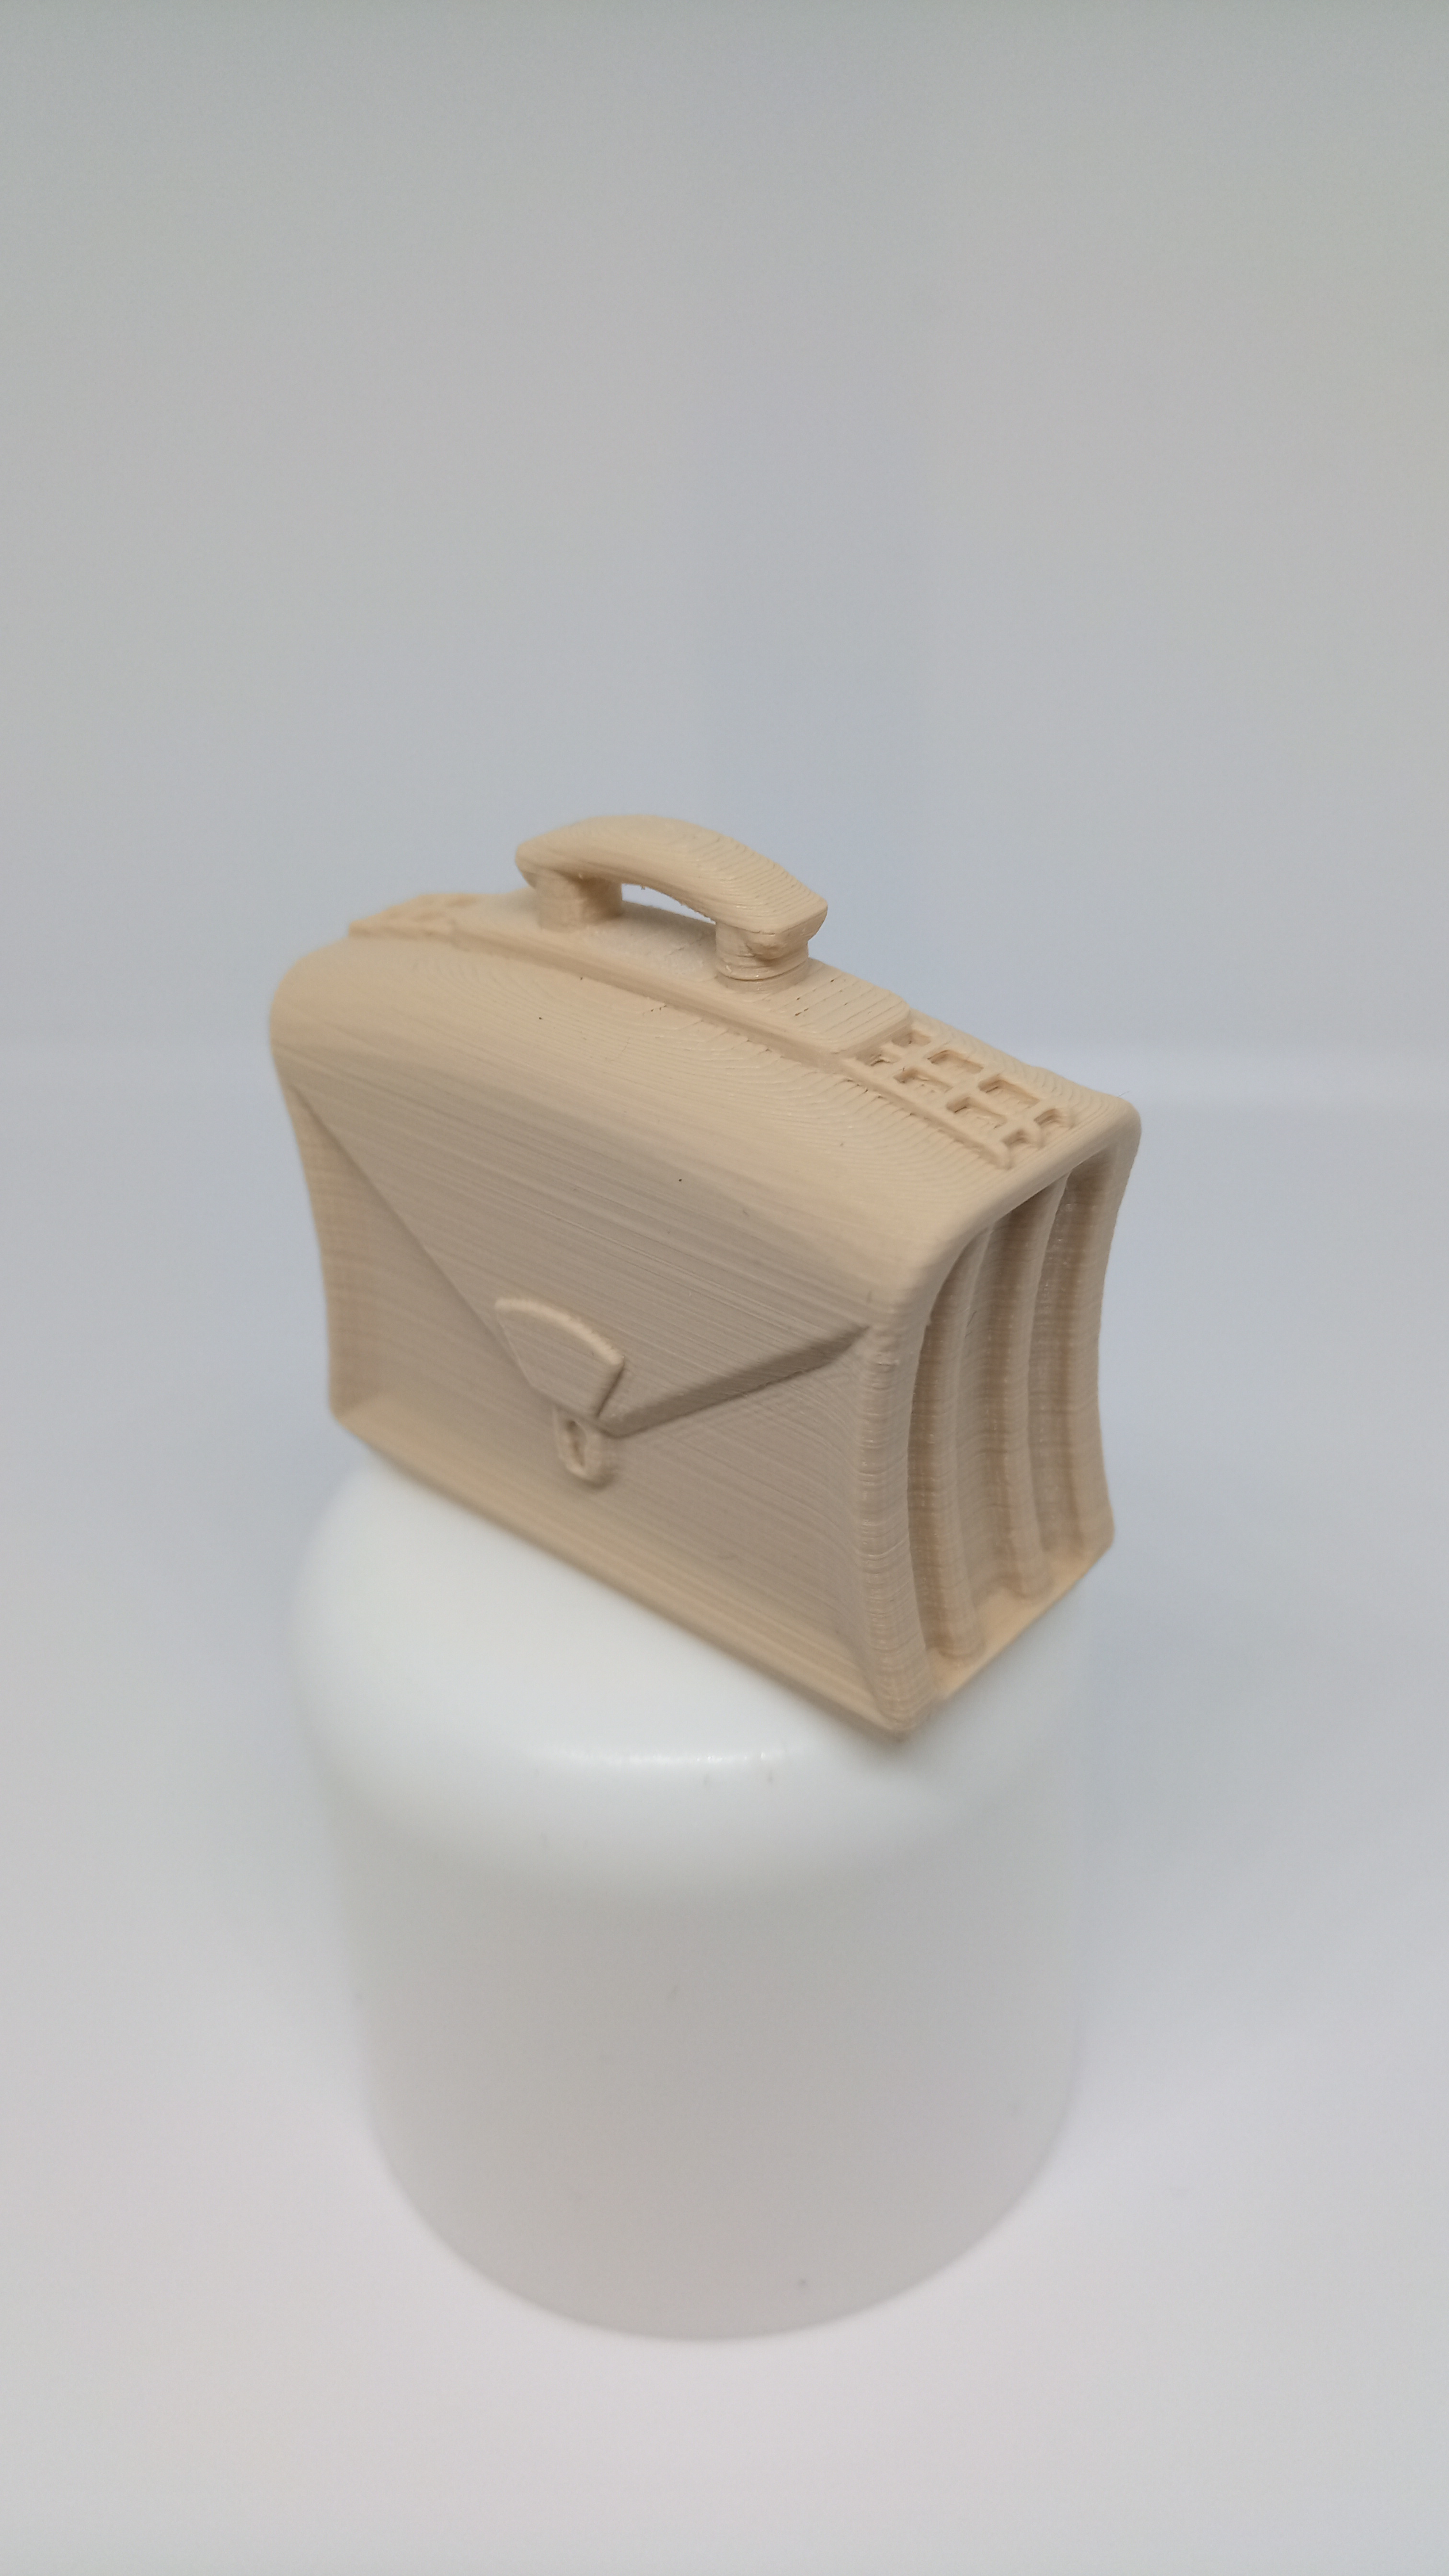 IMG_20200405_142522.jpg Download free STL file SACOCHE MASTER • Template to 3D print, PLP